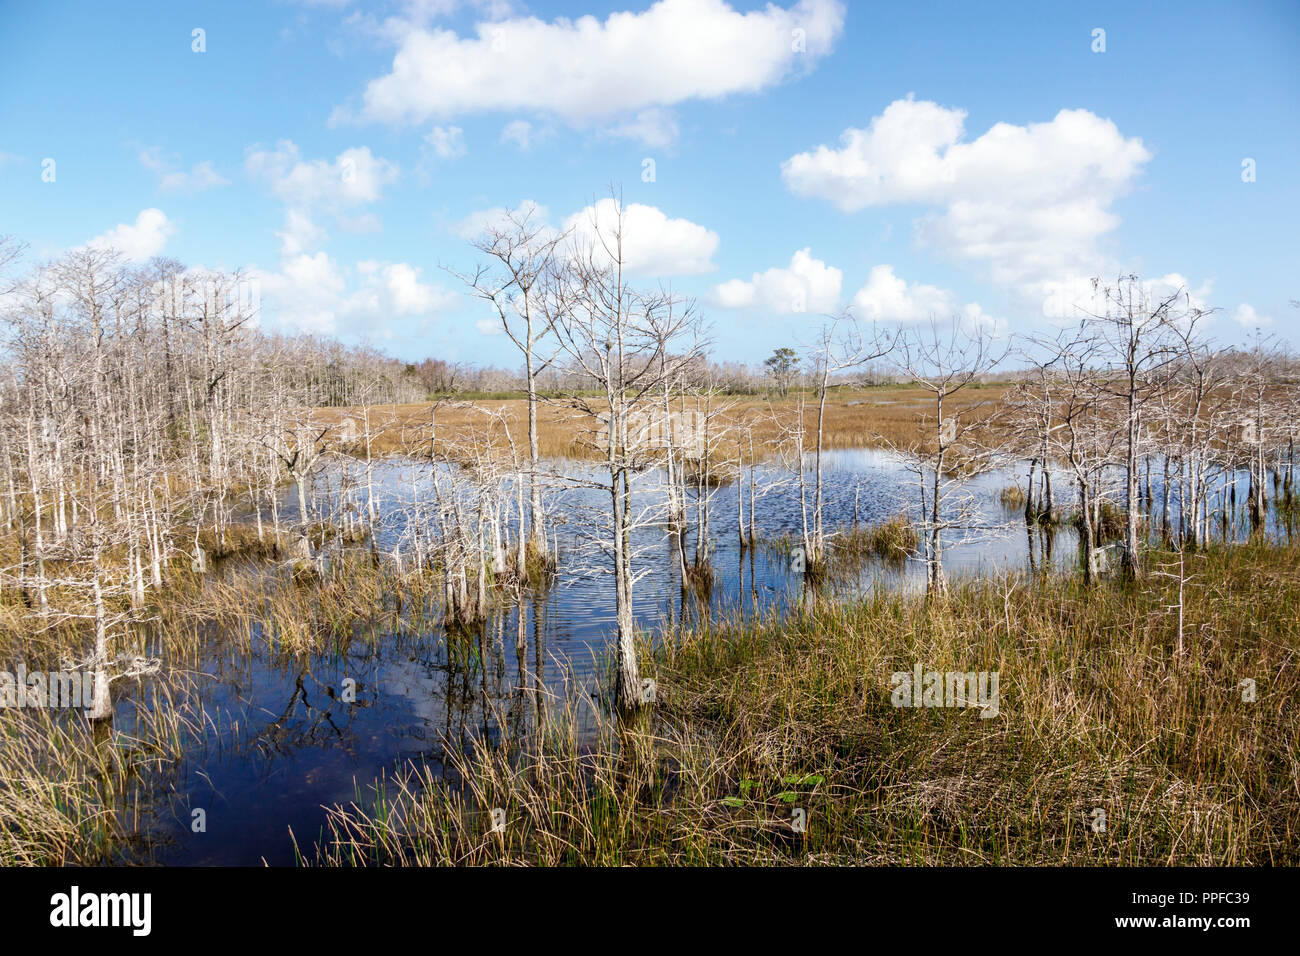 West Palm Beach Florida Grassy Waters Nature Preserve wetlands ecosystem water bald cypress trees - Stock Image